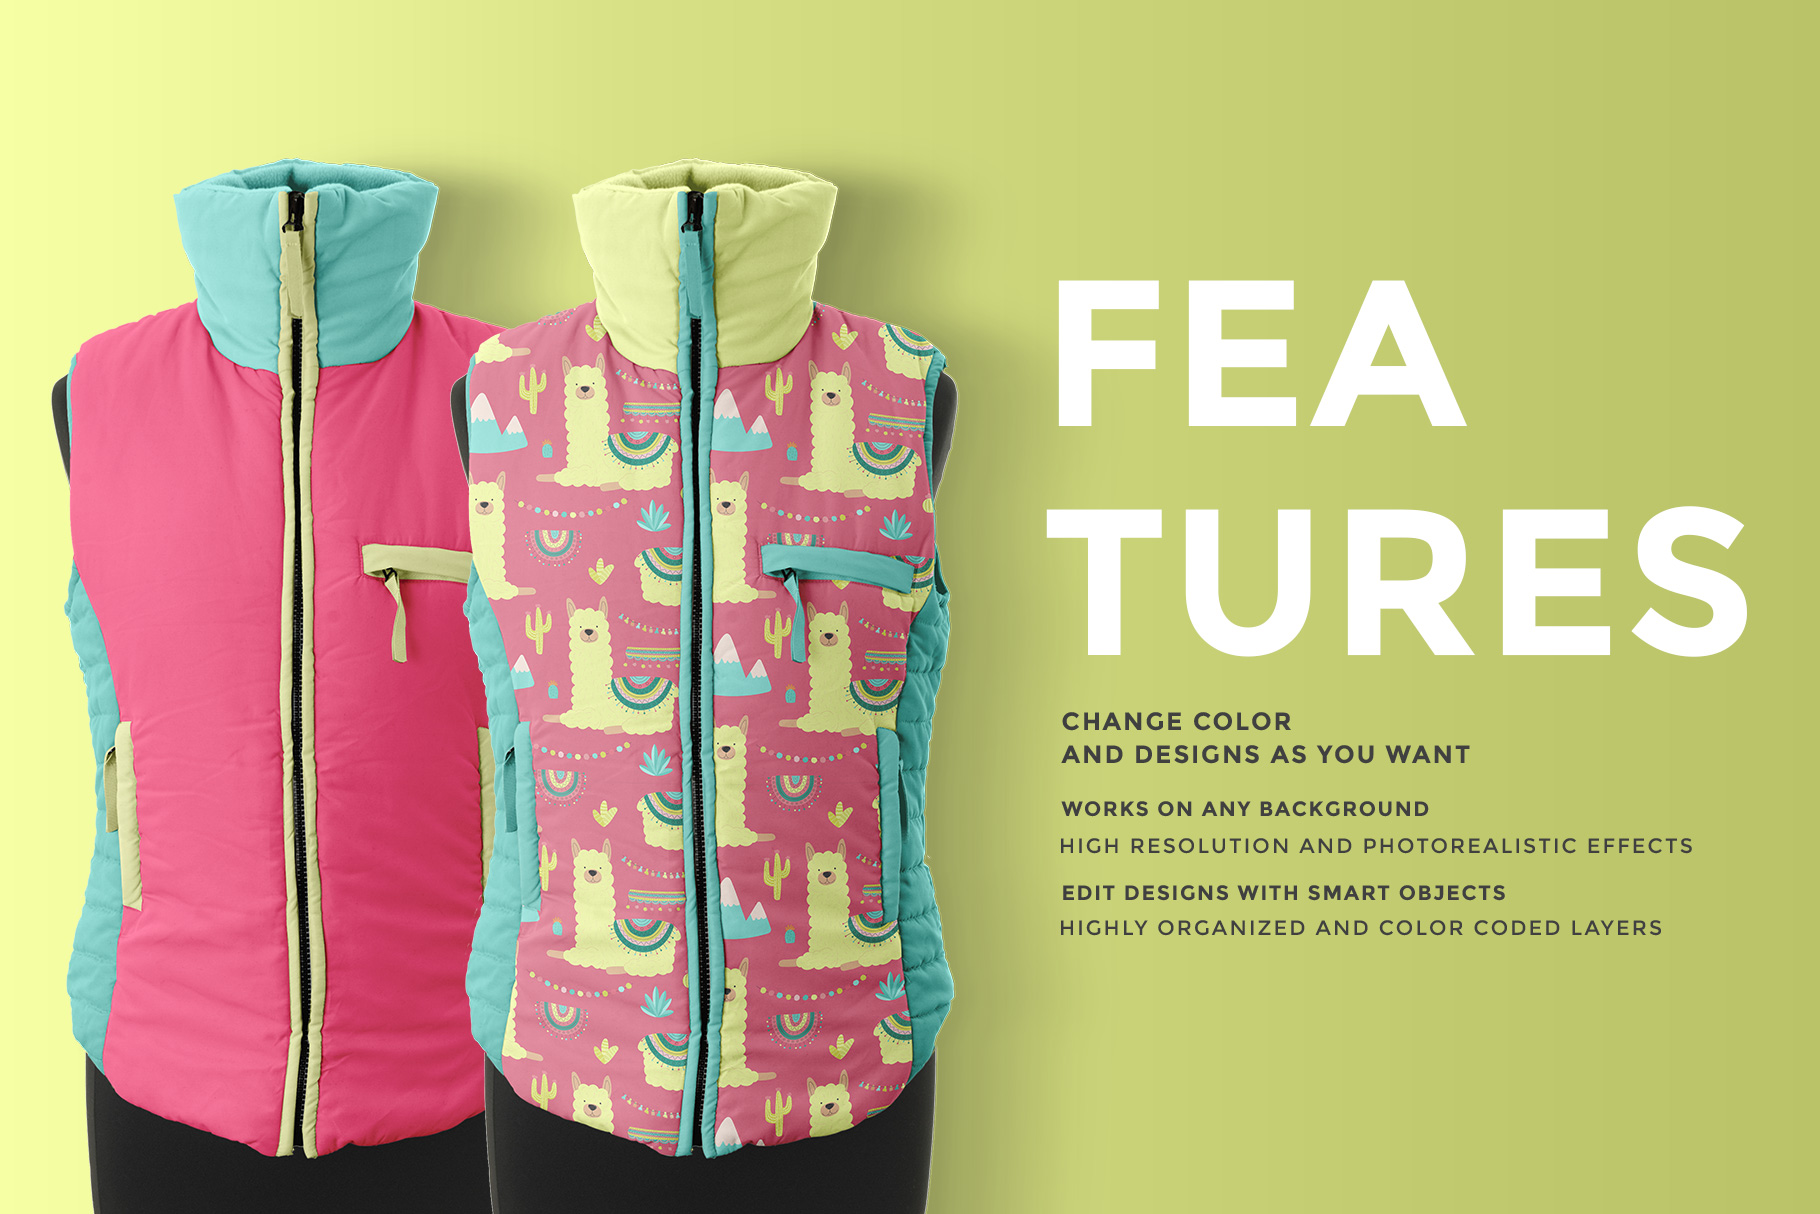 features of the women's sleeveless winter jacket mockup